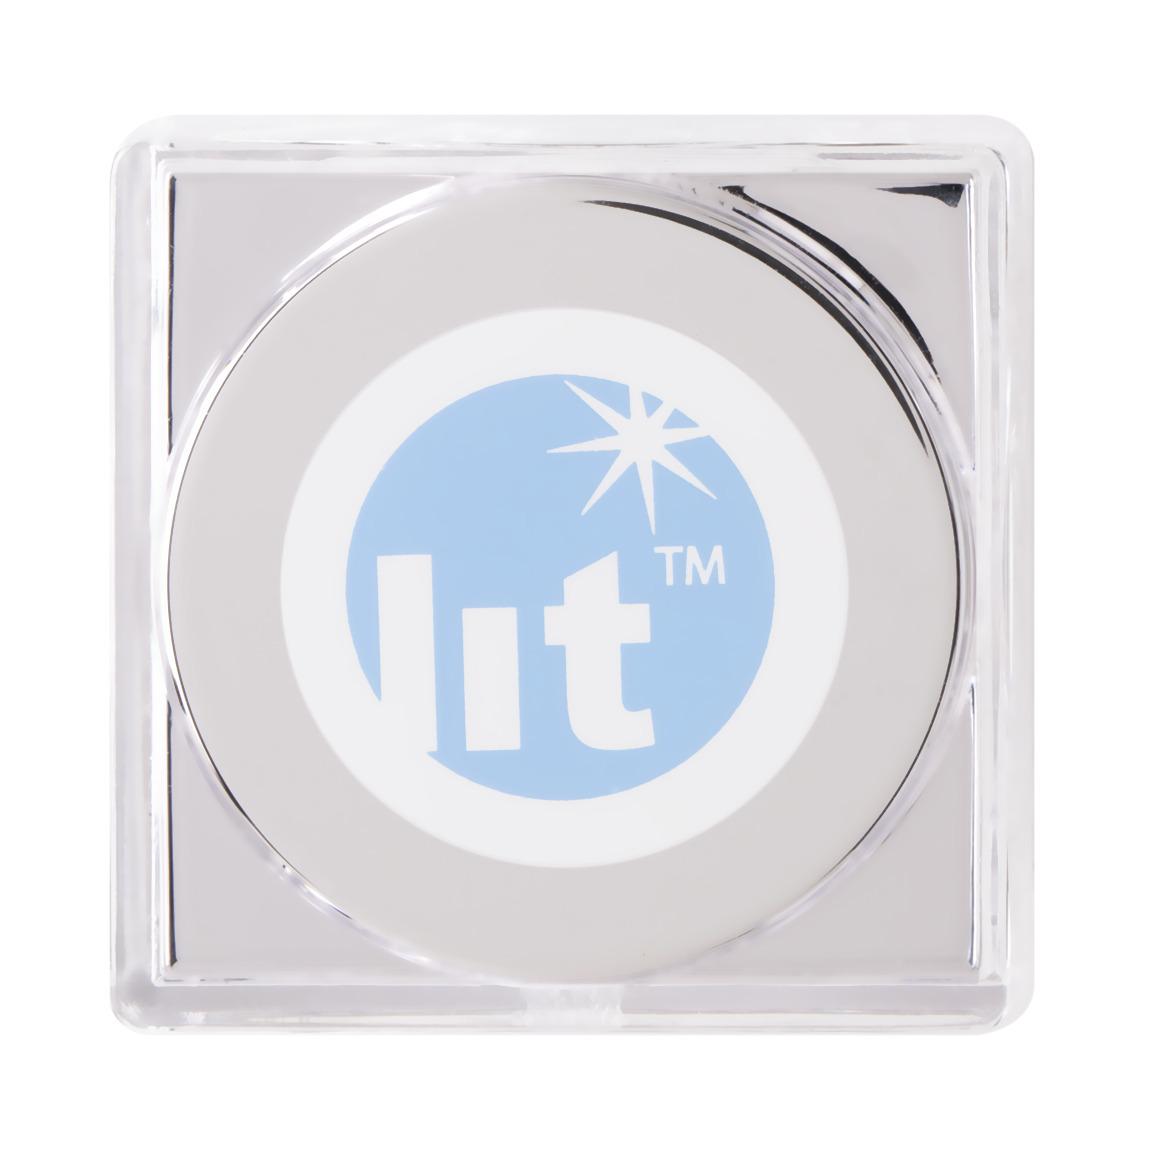 Lit Cosmetics Lit Glitter Nightlife S3 (Solid)